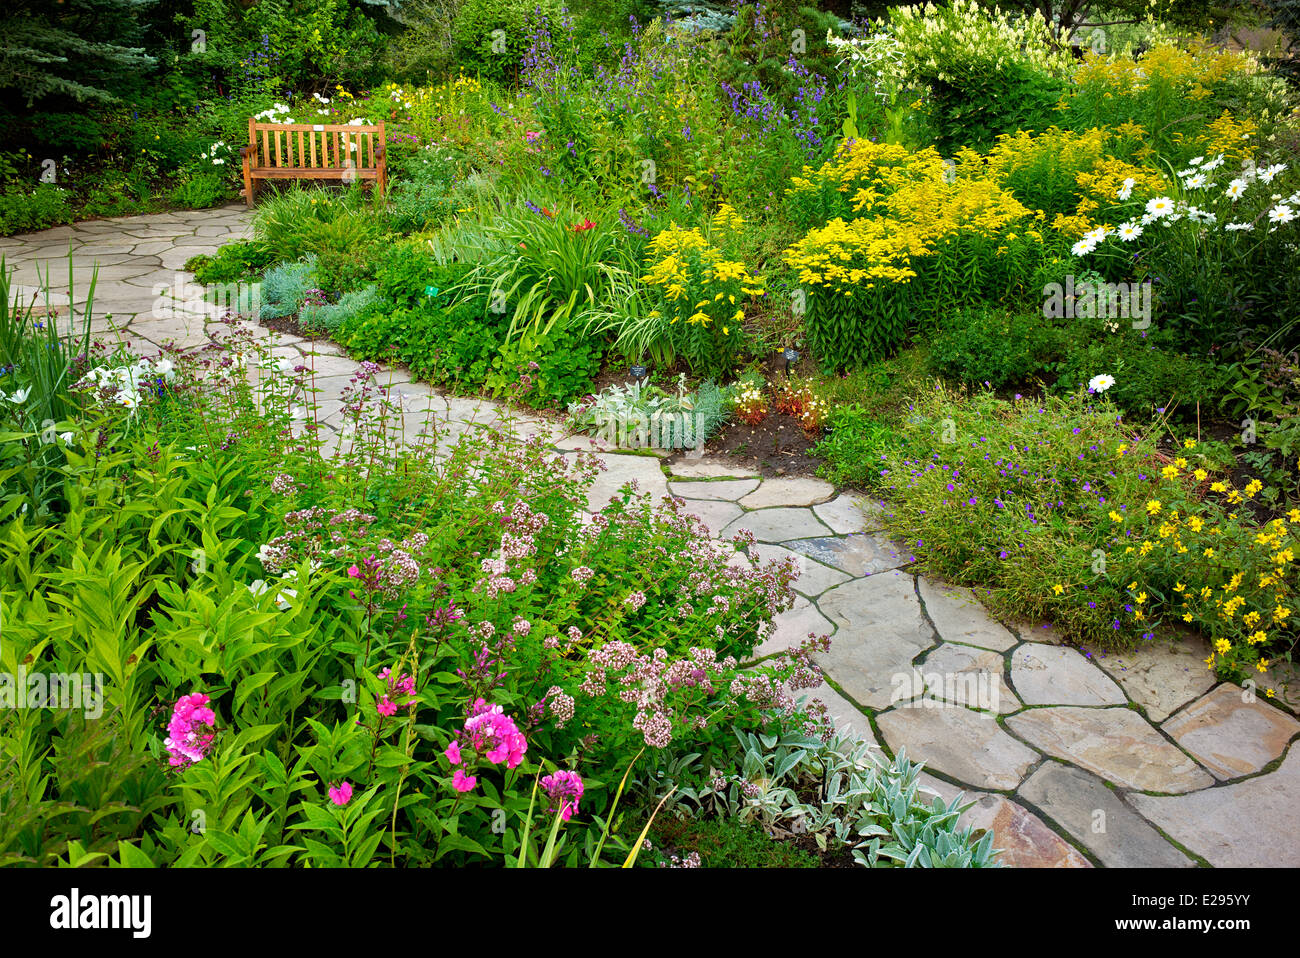 Flower Garden With Foreground Sedums And Stone Path In Betty Ford Alpine  Gardens. Vale Colorado